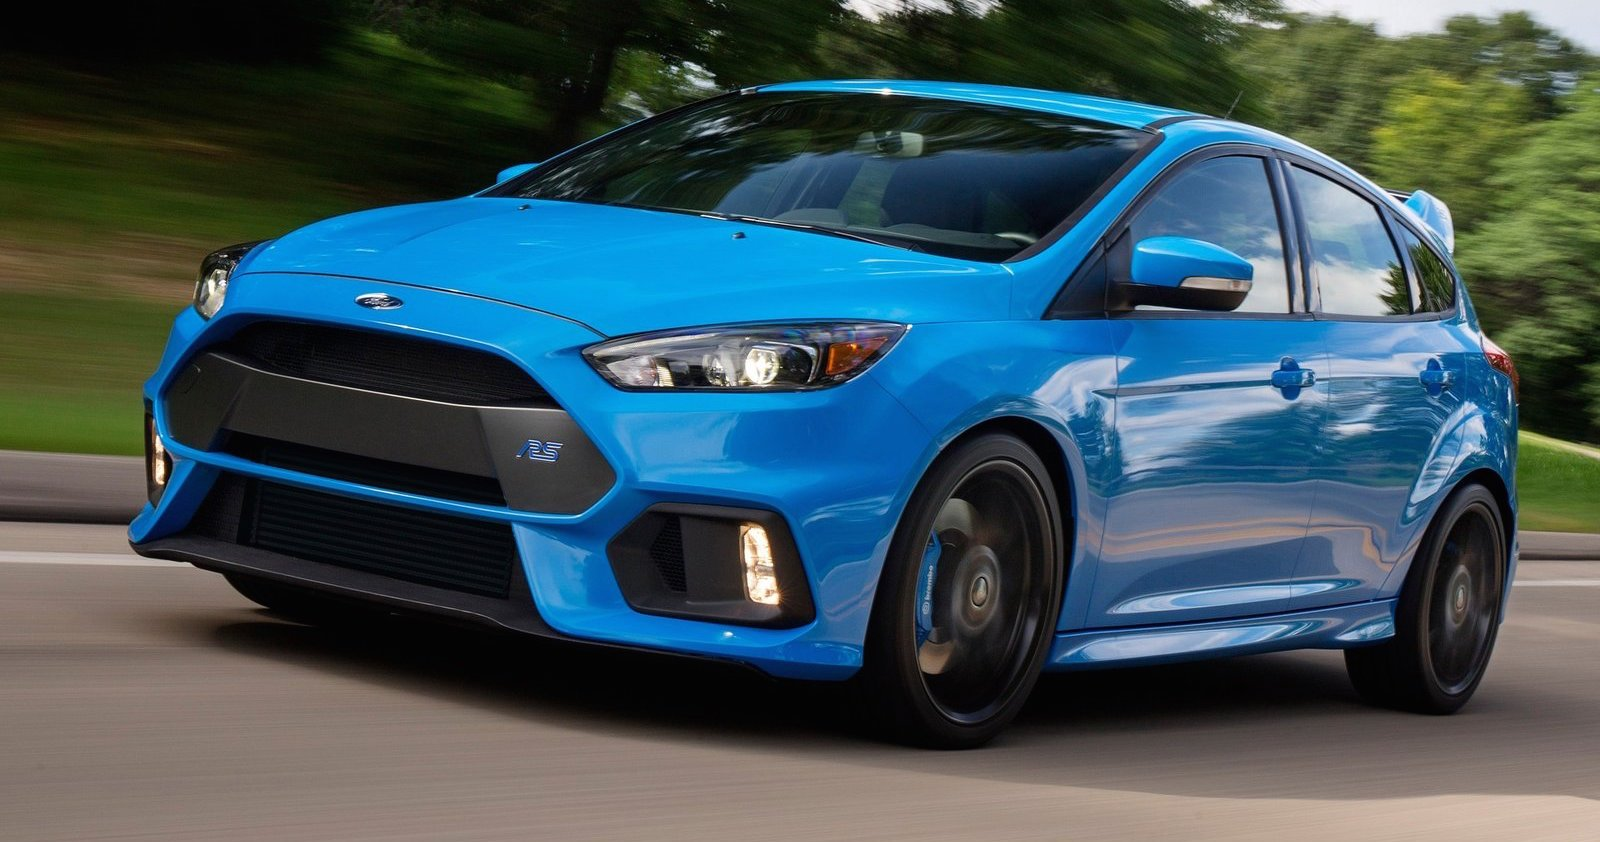 Ford Fiesta RS: 40 years of Fiesta could bring new hero ...